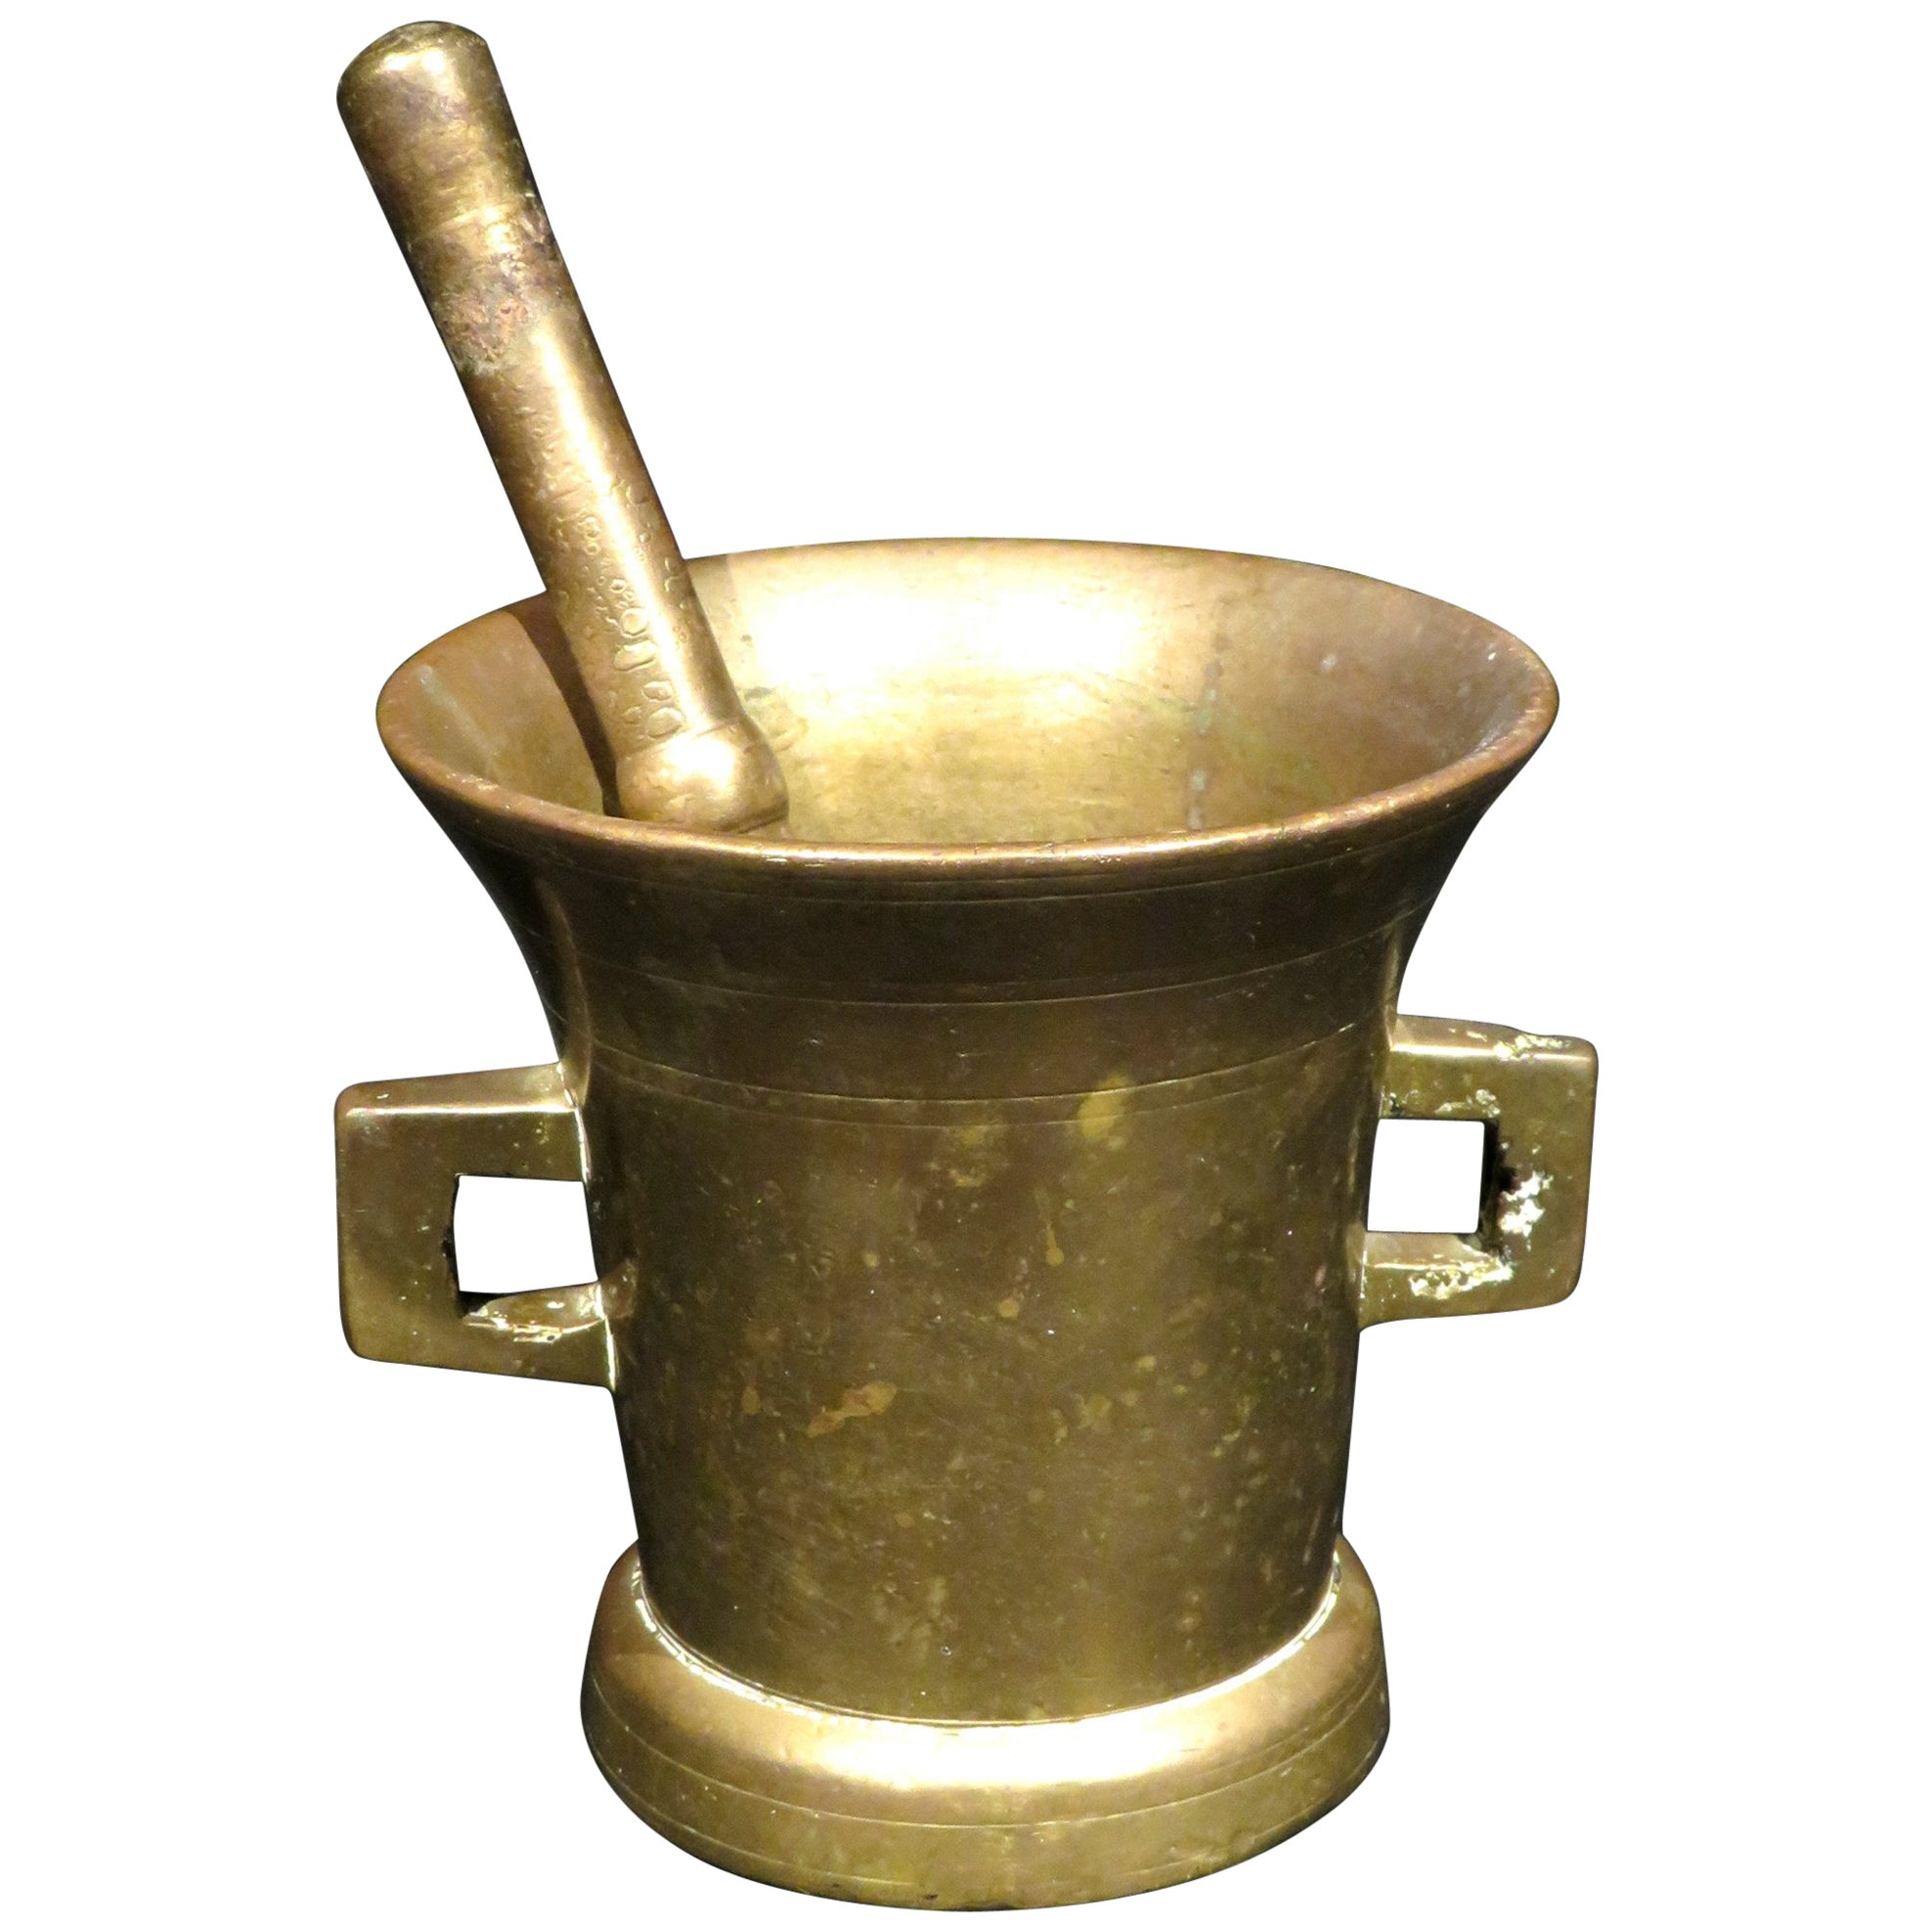 Early 19th Century Bronze Apothecary Mortar and Pestle, Continental Circa 1820